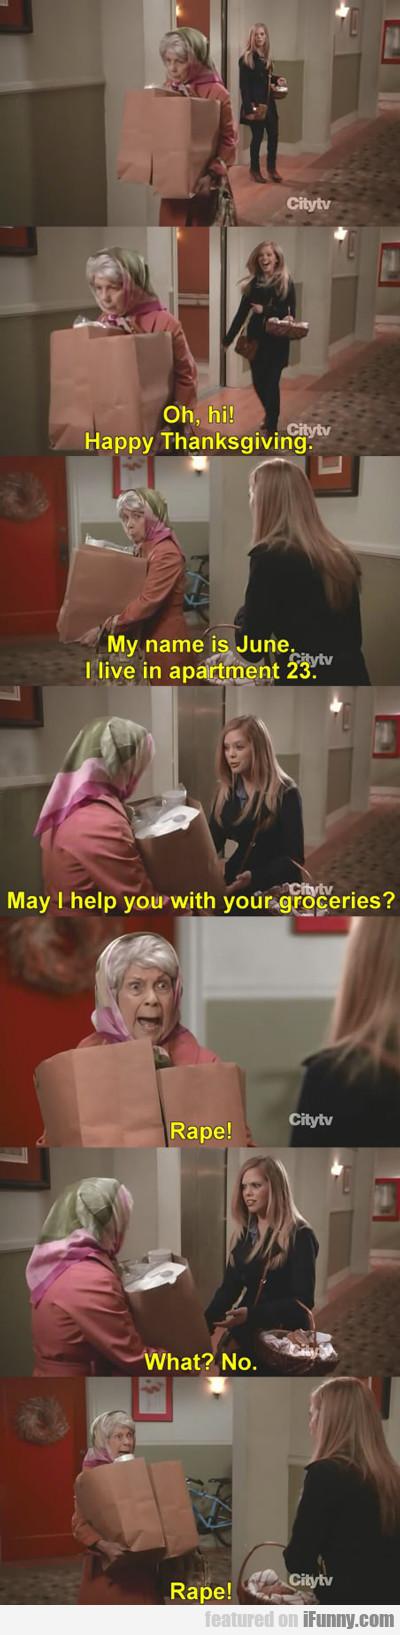 oh hi, happy thanksgiving, my name is june...